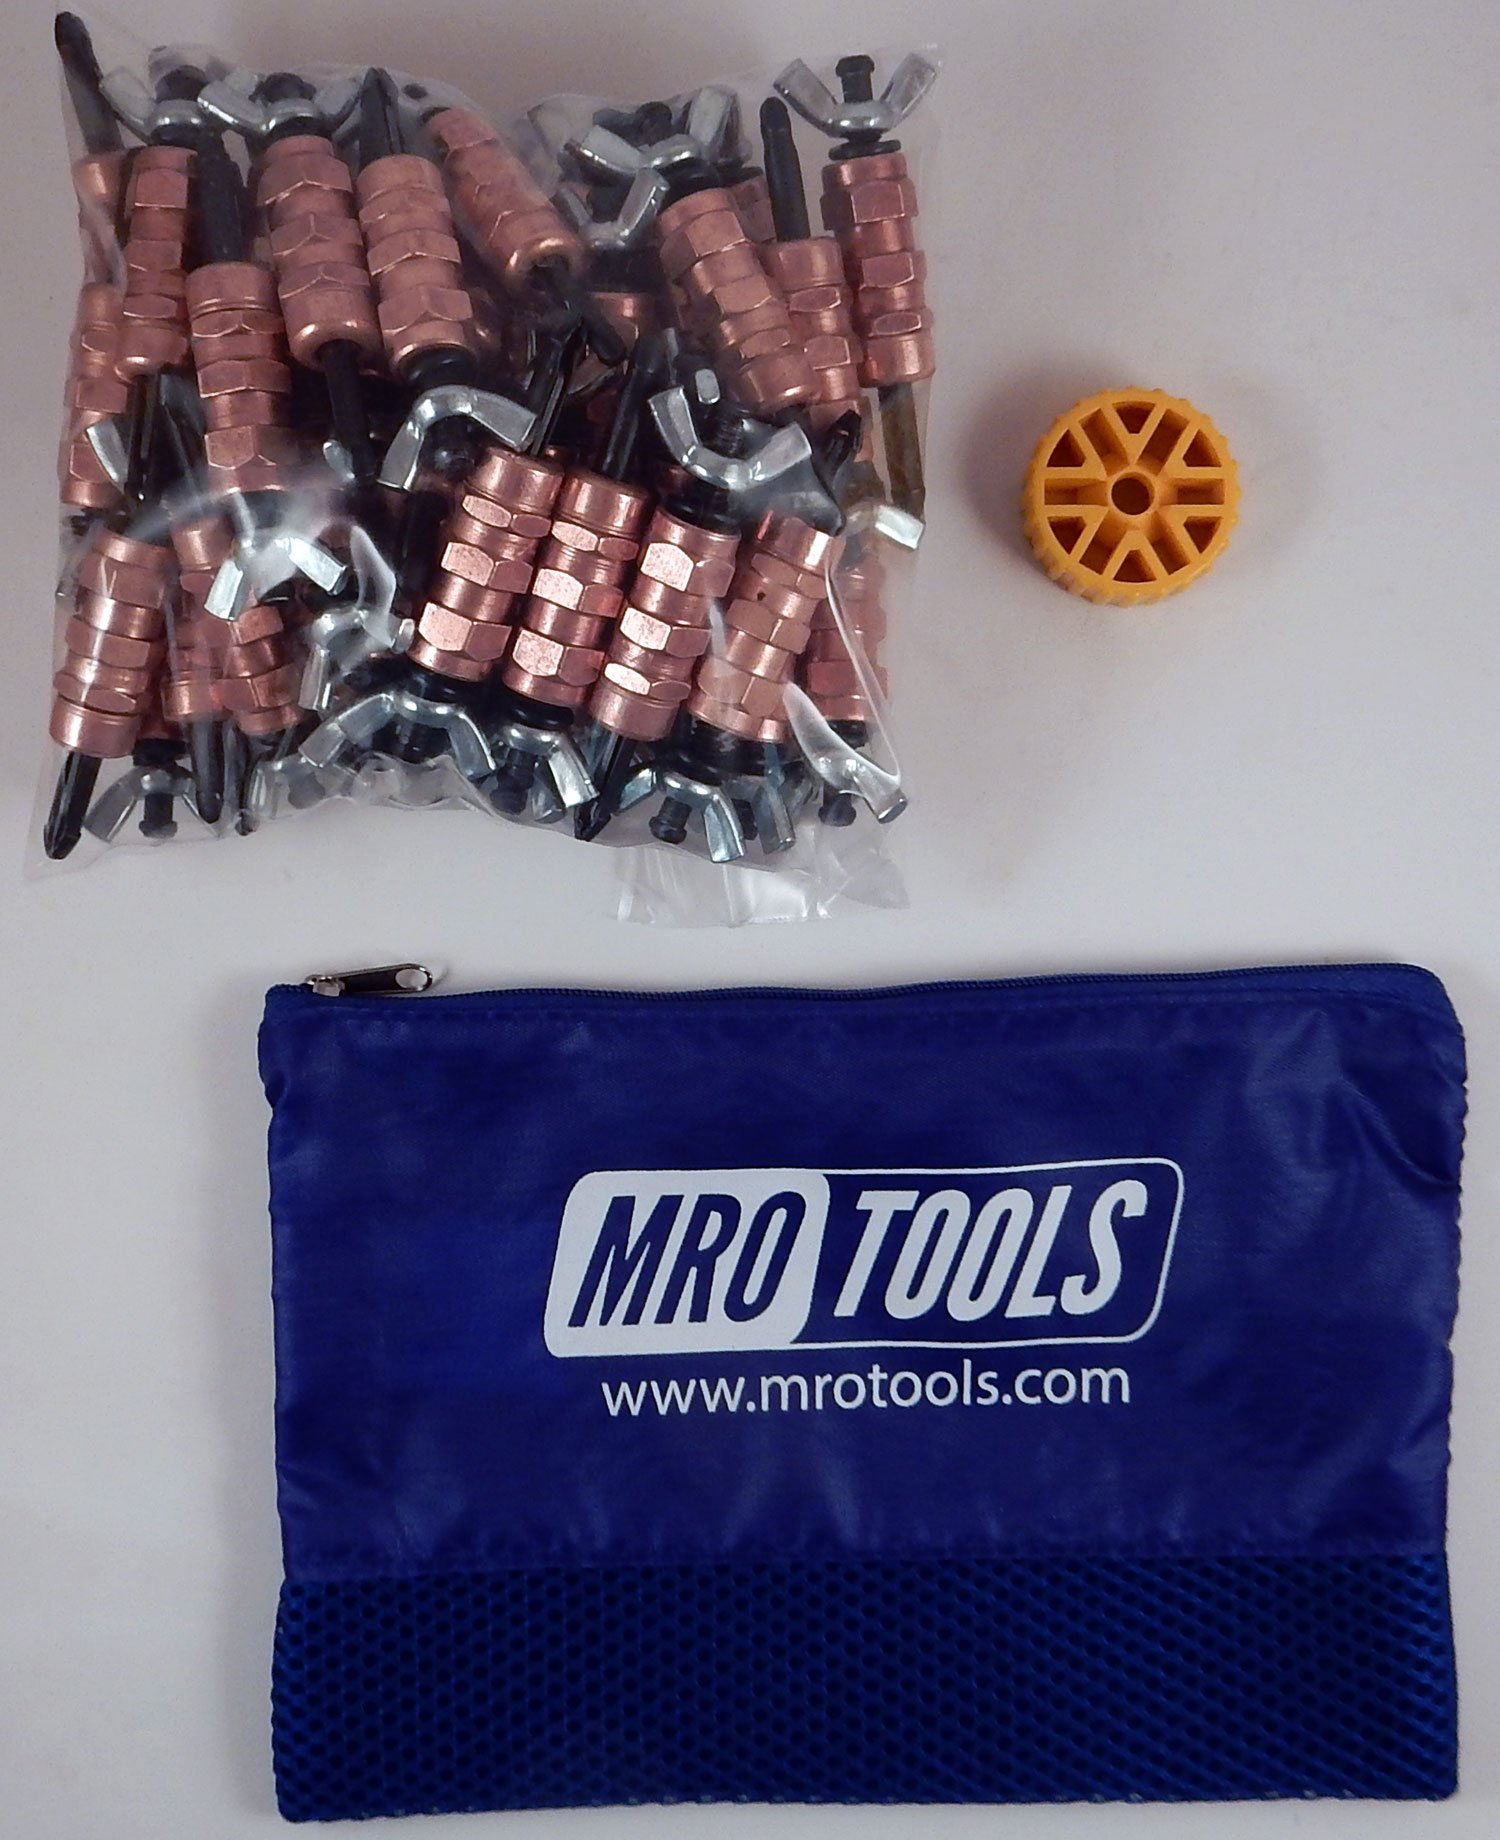 50 1/4 Standard Wing-Nut Cleco Fasteners w/ HBHT Tool & Carry Bag (KWN1S50-1/4) by MRO Tools Cleco Fasteners